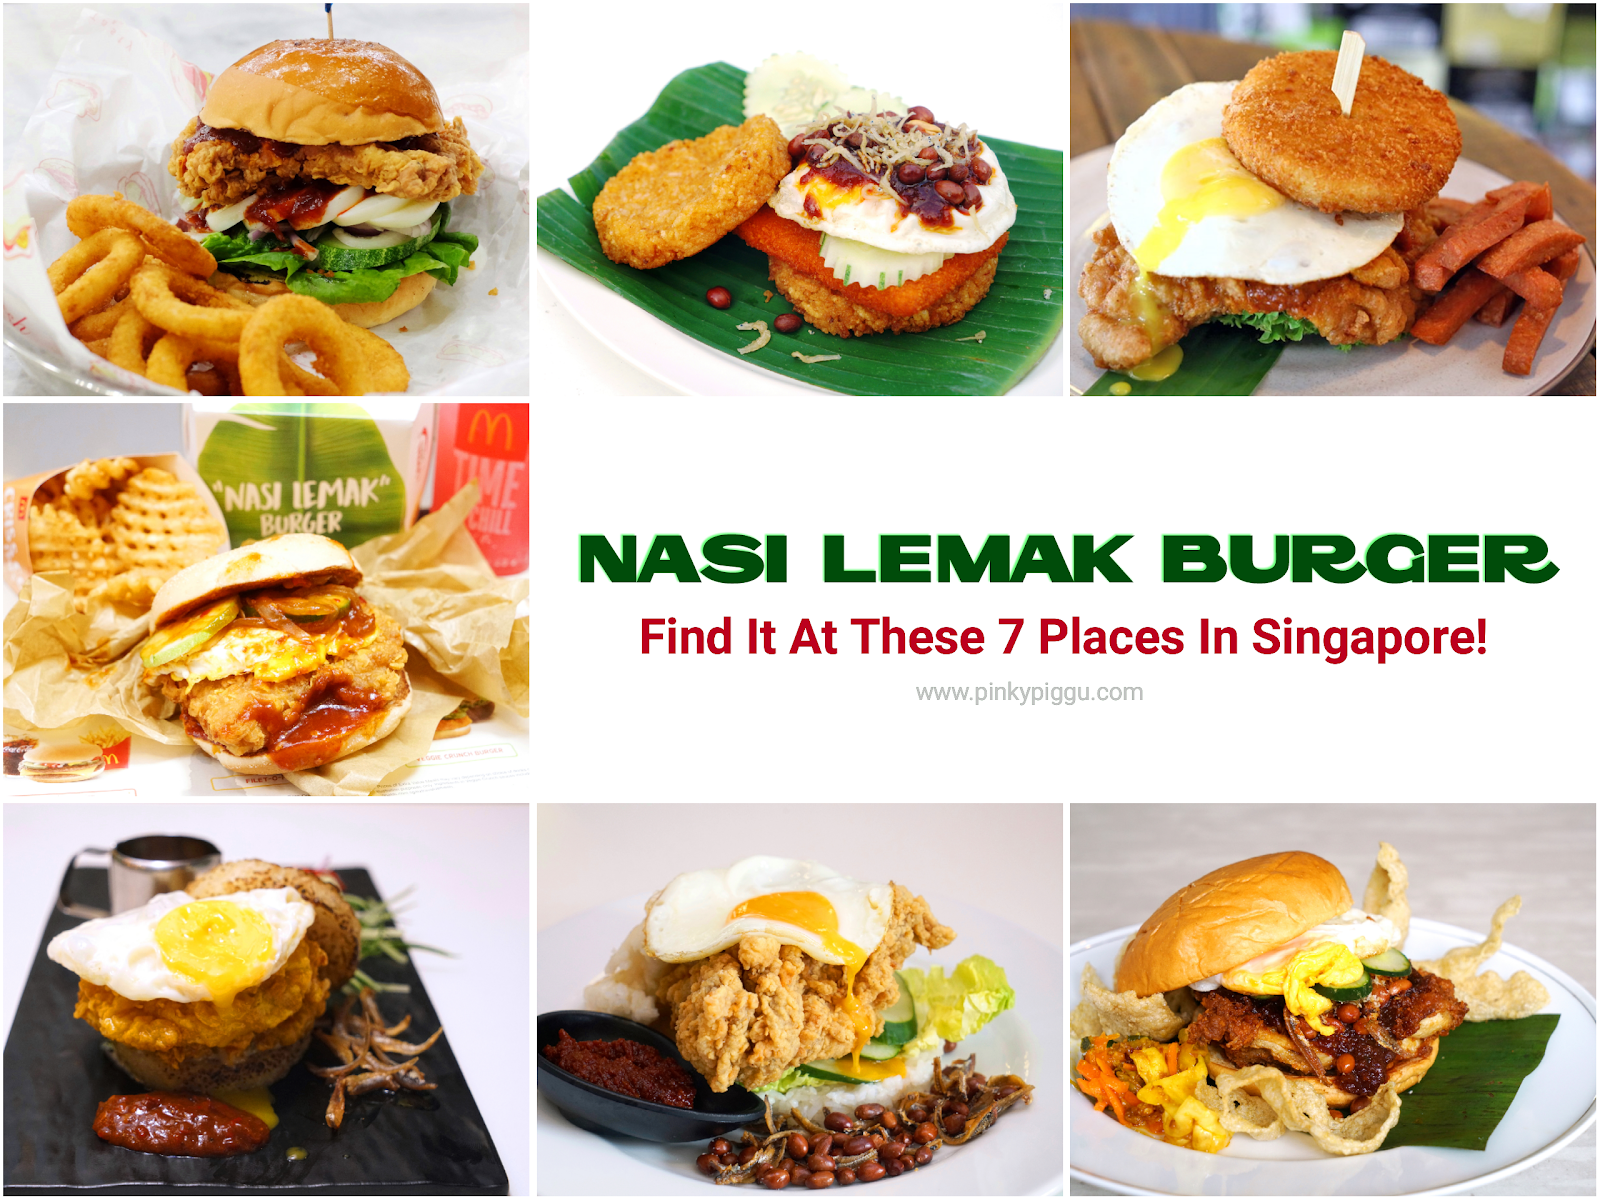 NASI LEMAK BURGER! Find It At These 7 Places In Singapore!